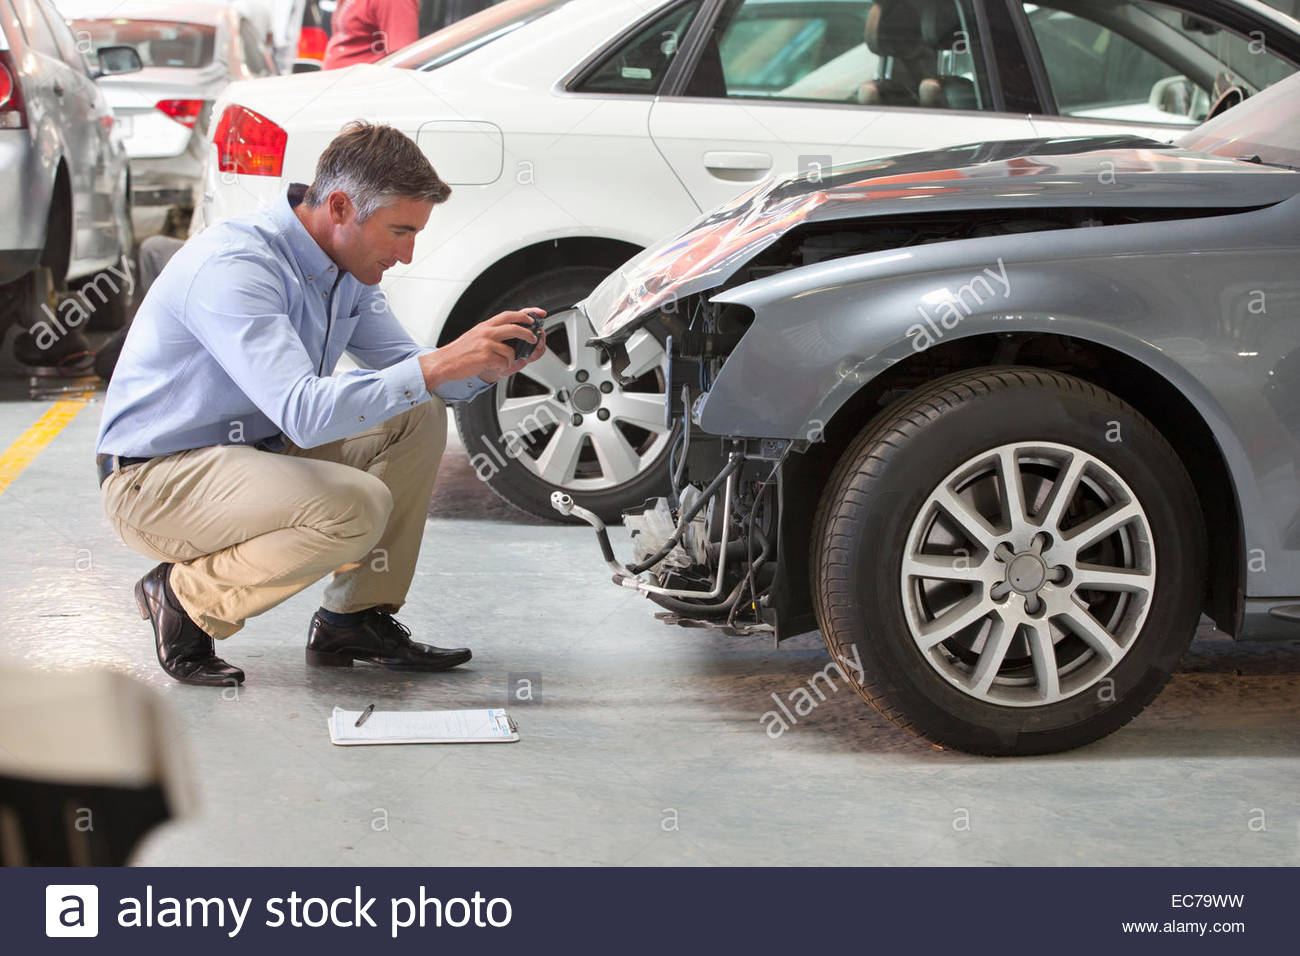 Insurance assessor inspecting damaged vehicle and taking photograph - Stock Image